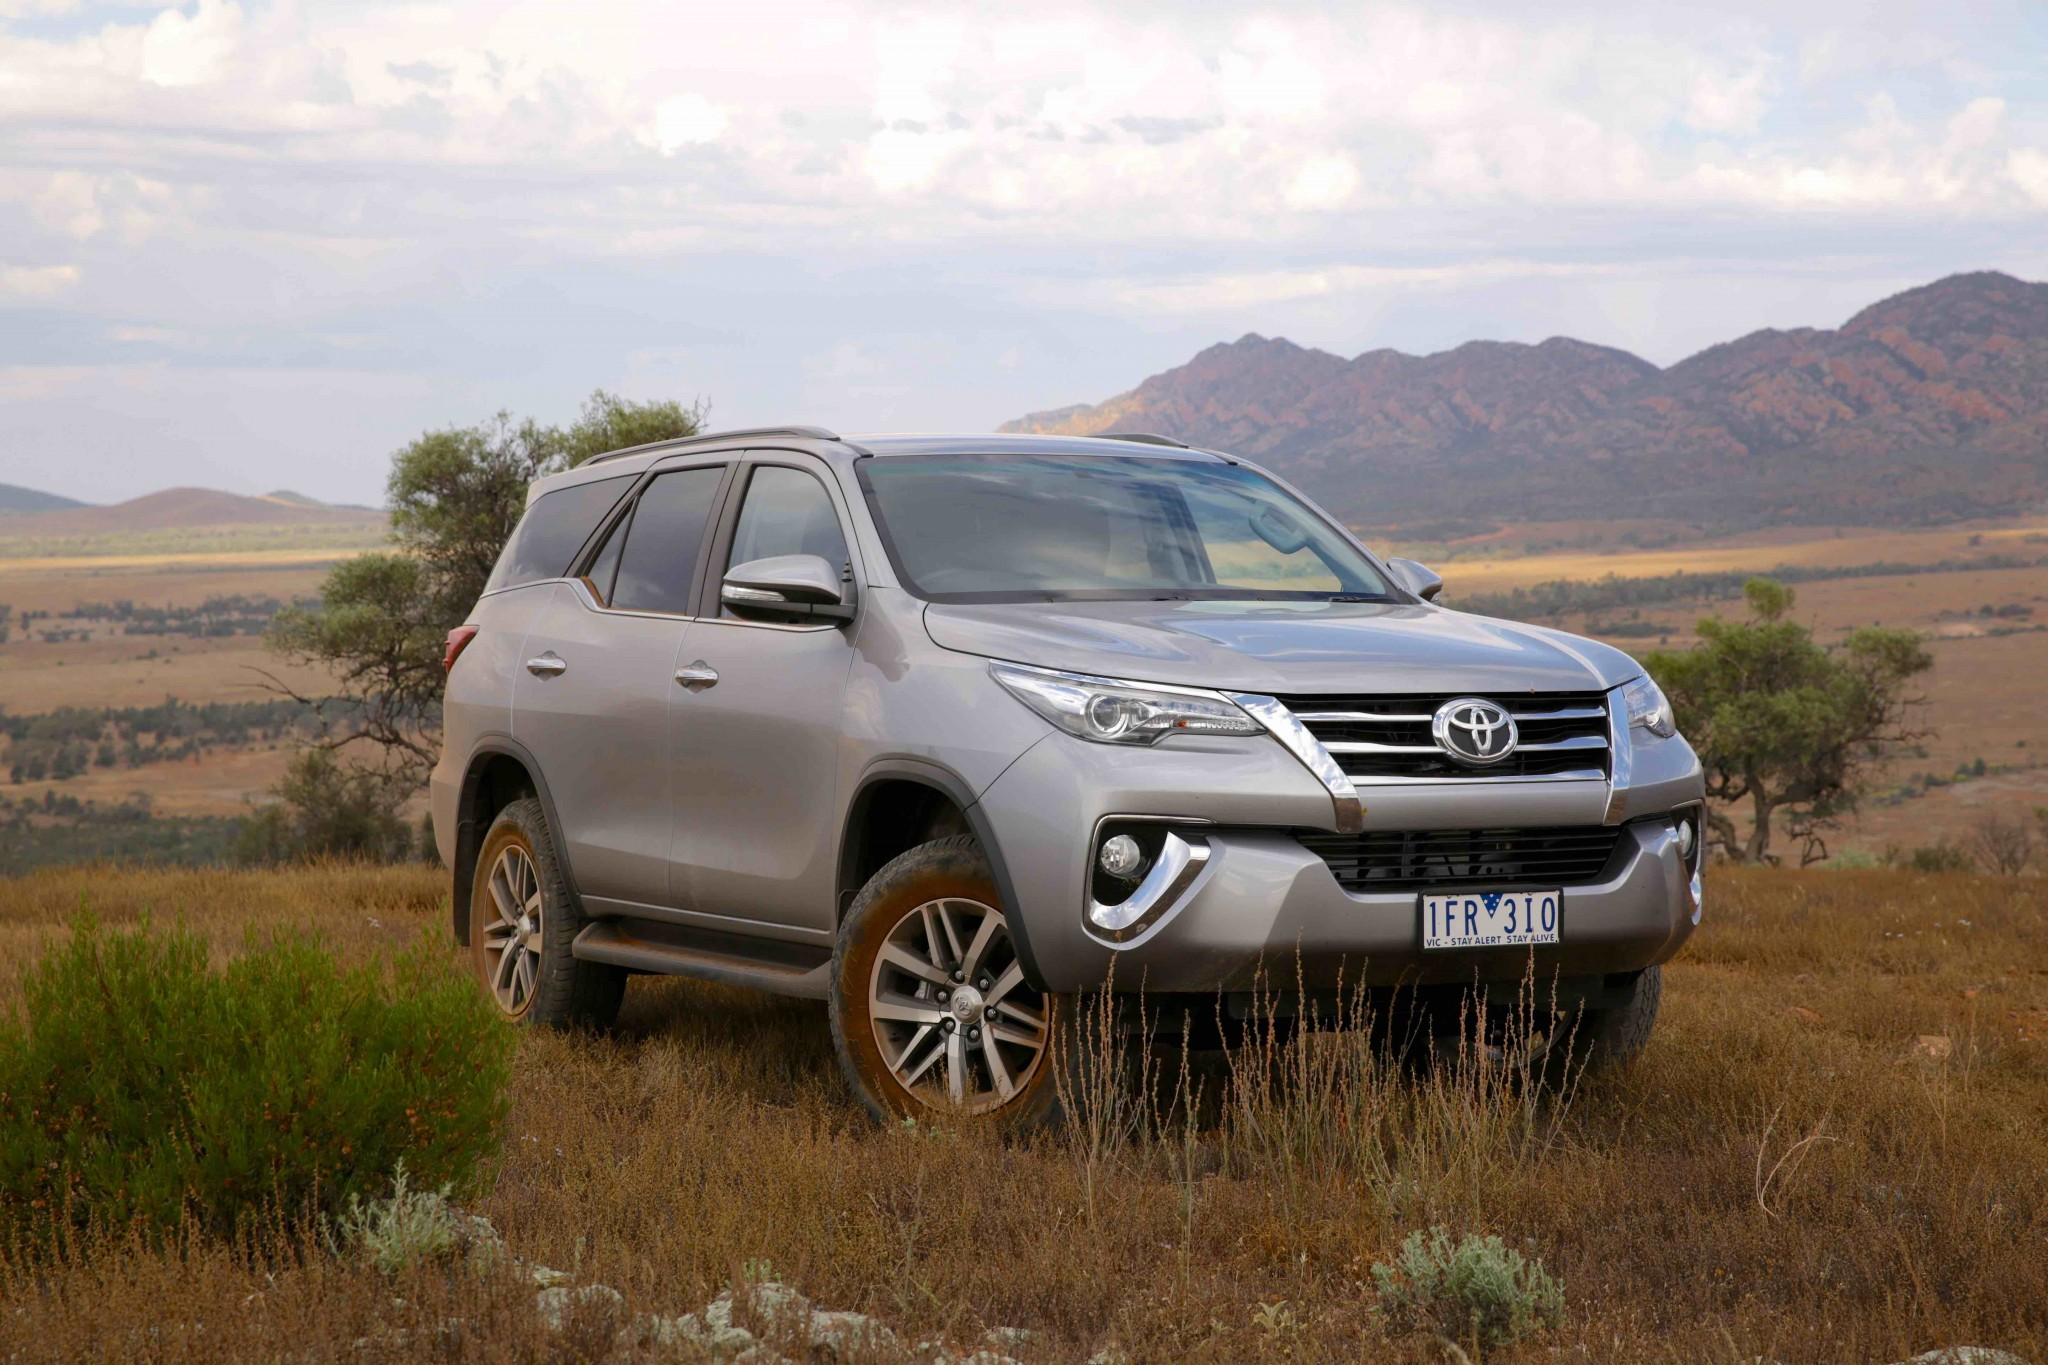 Driven: The Toyota Fortuner